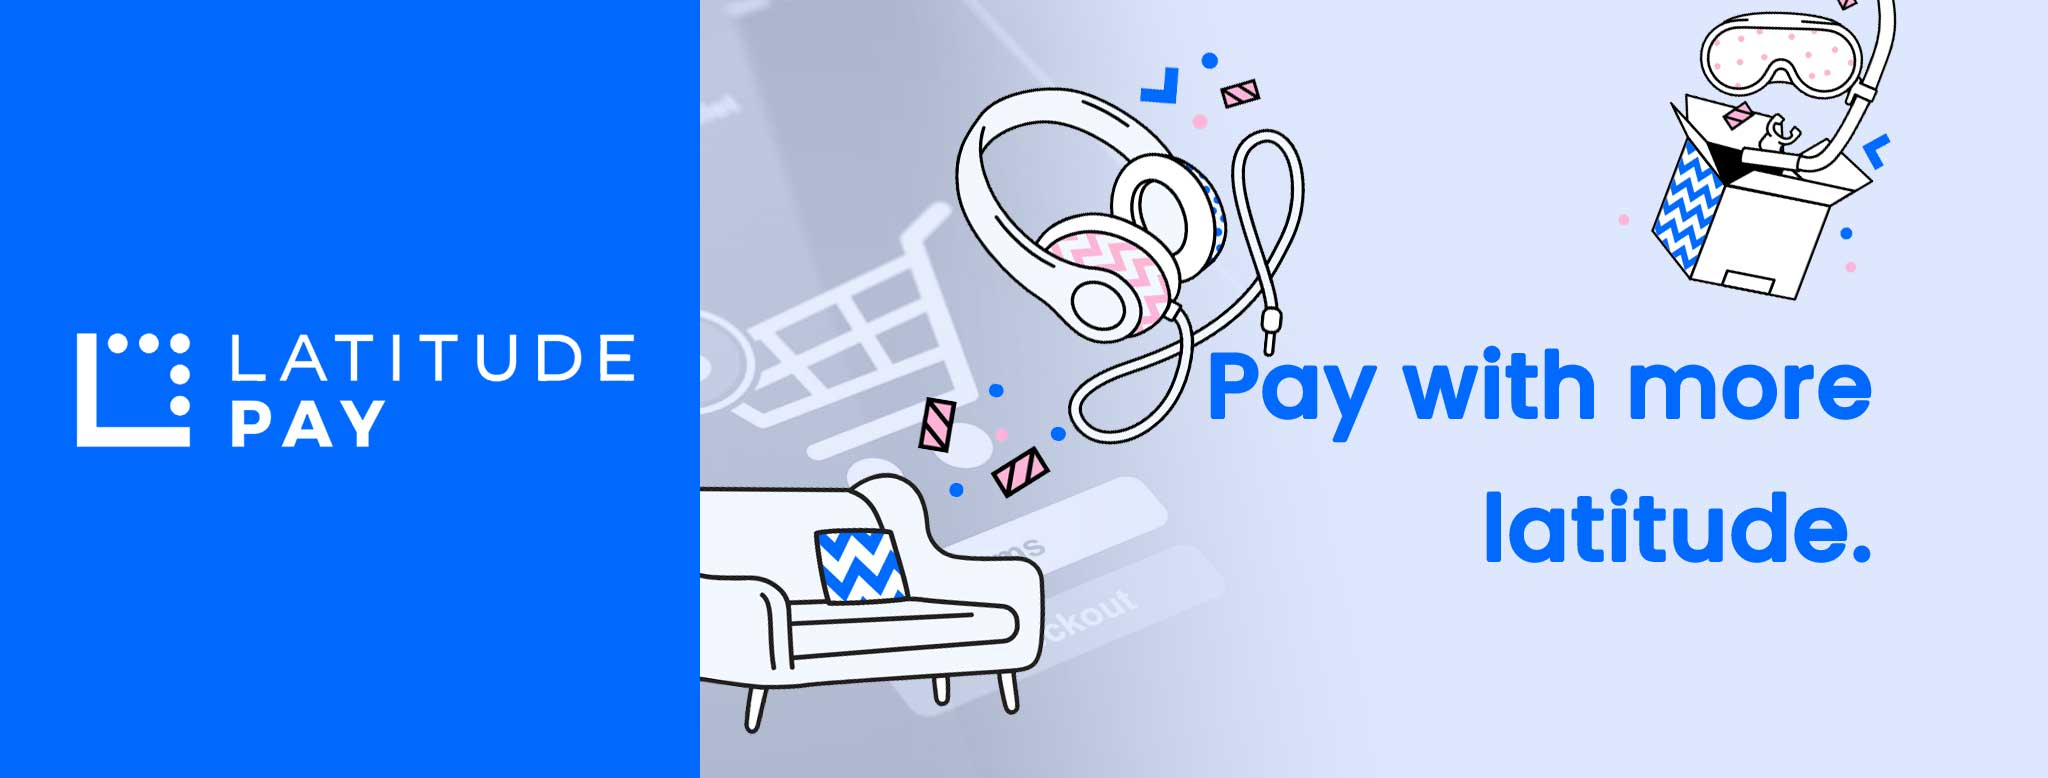 Pay with LatitudePay